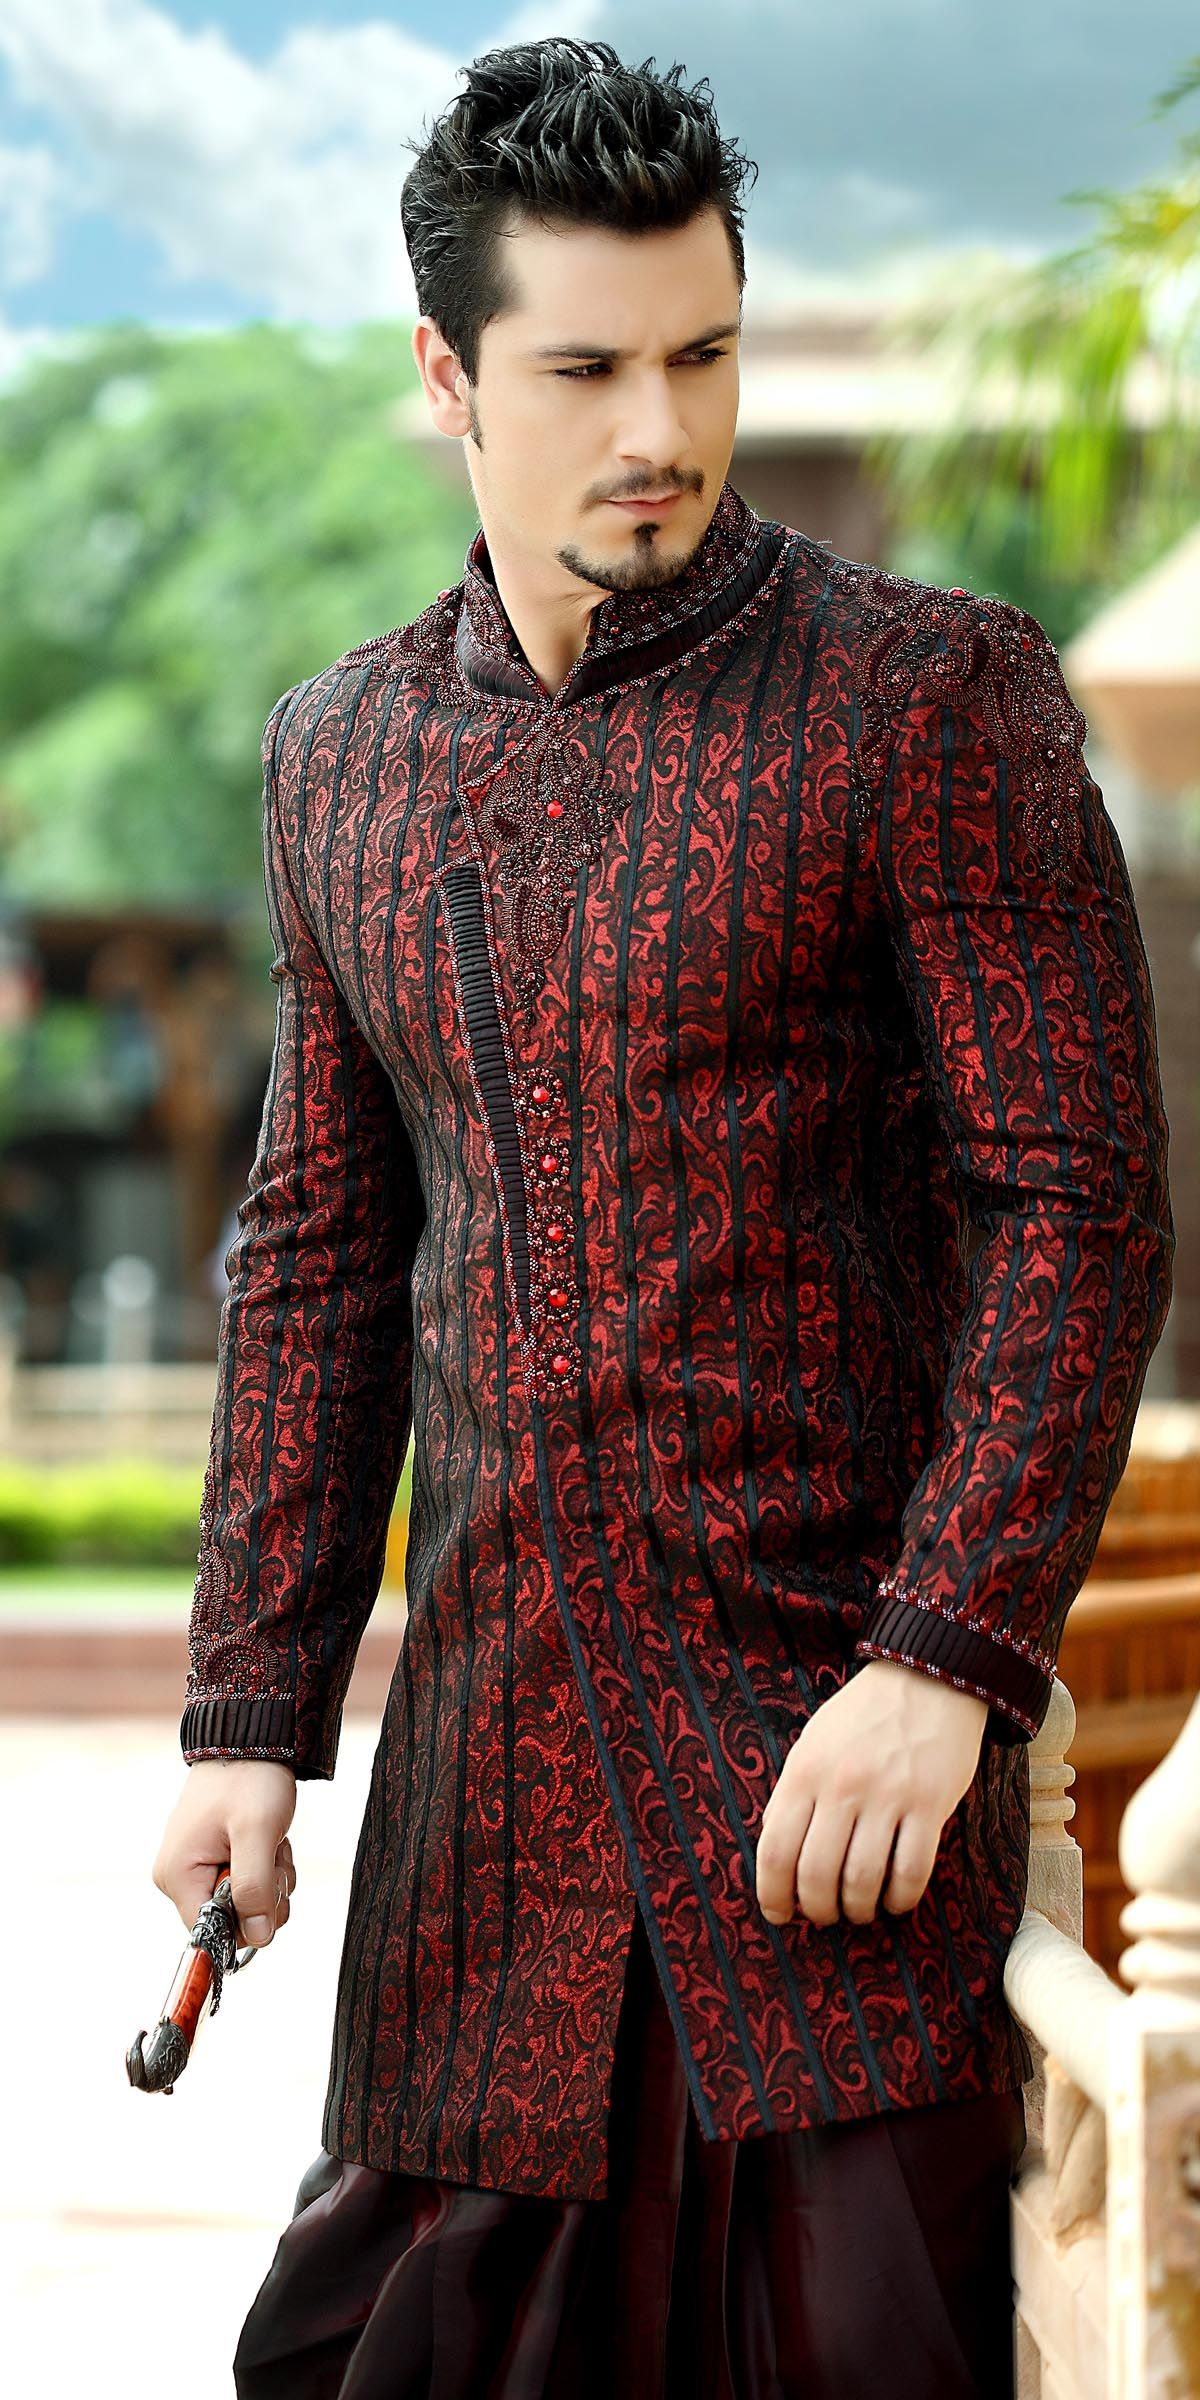 Sherwani Wedding Jacket a traditional garment worn in Pakistan